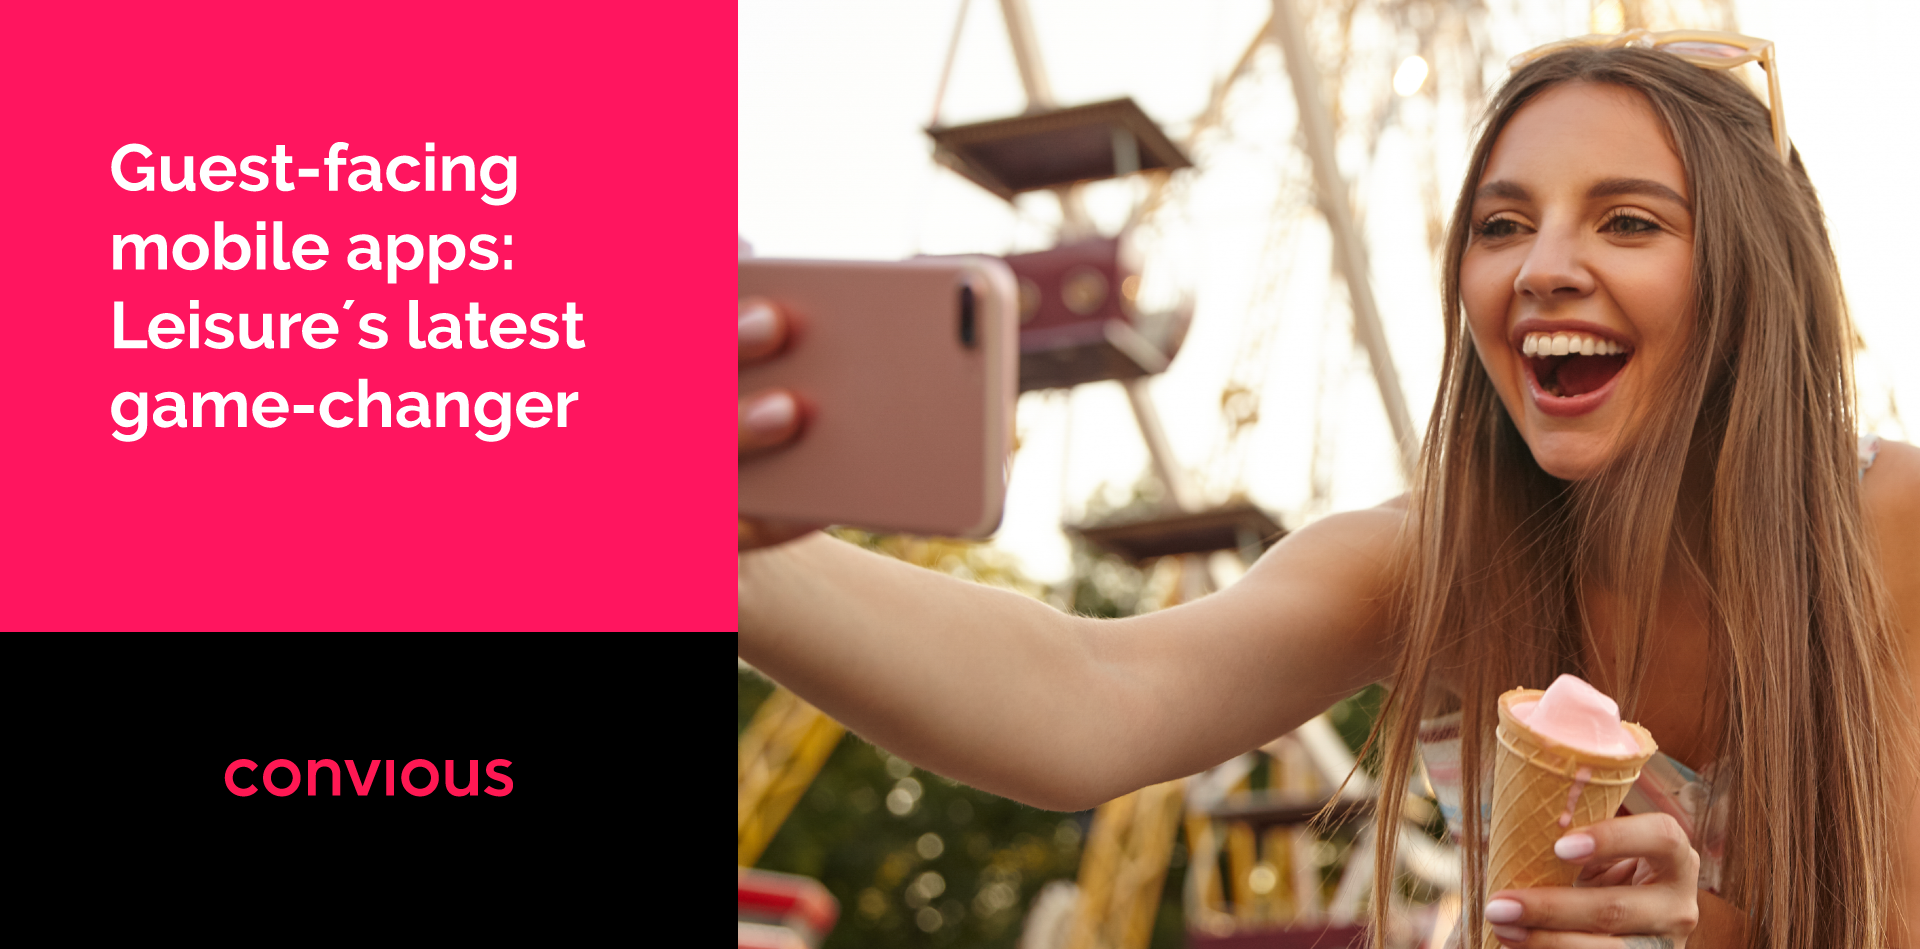 Guest-facing mobile apps: Leisure´s latest game-changer.